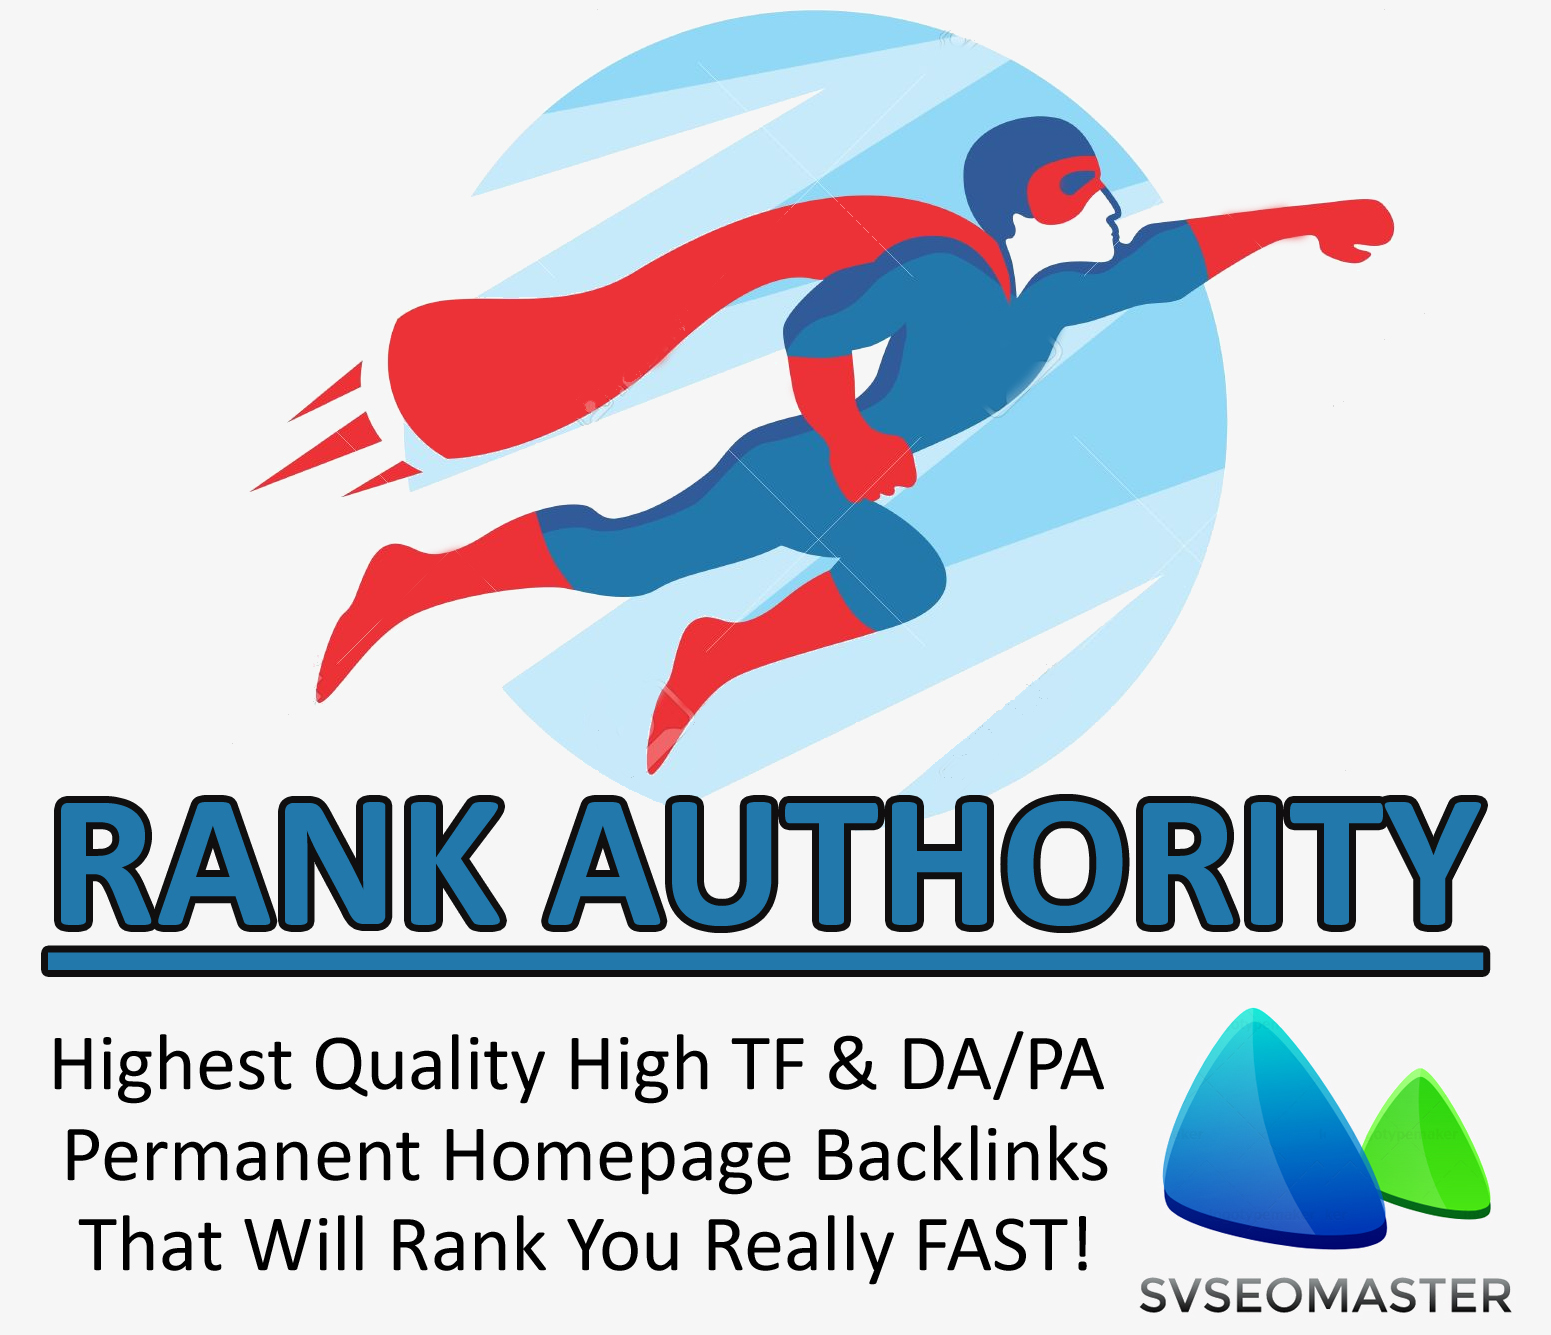 Rank Authority PBN - Up to 30+ TF/CF and 40+ DA/PA Permanent Homepage Backlinks